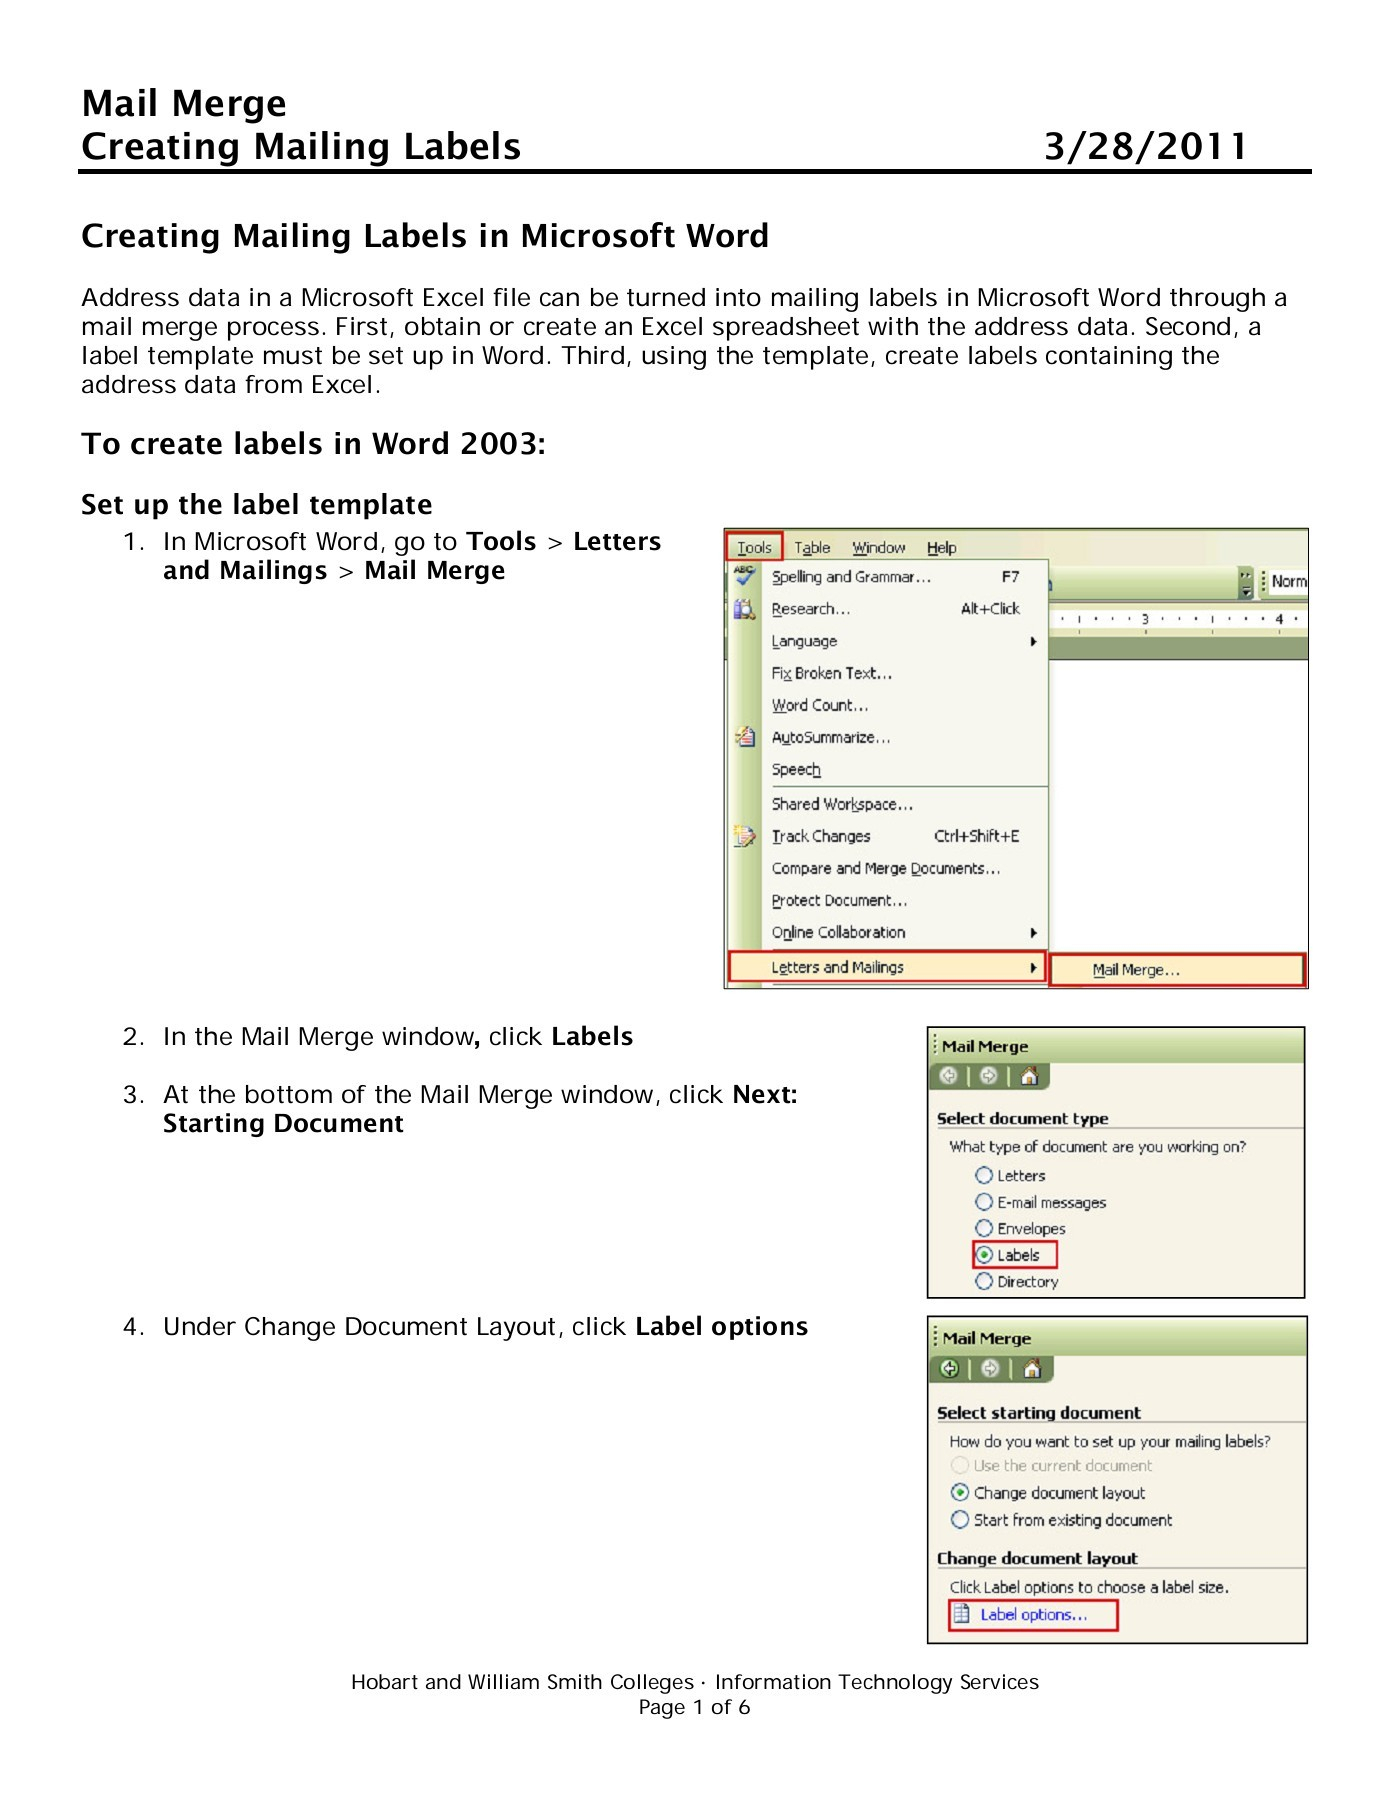 How To Make Mailing Labels From Excel Spreadsheet Intended For Mail Merge Creating Mailing Labels 3/28/ 2011 Pages 1  6  Text